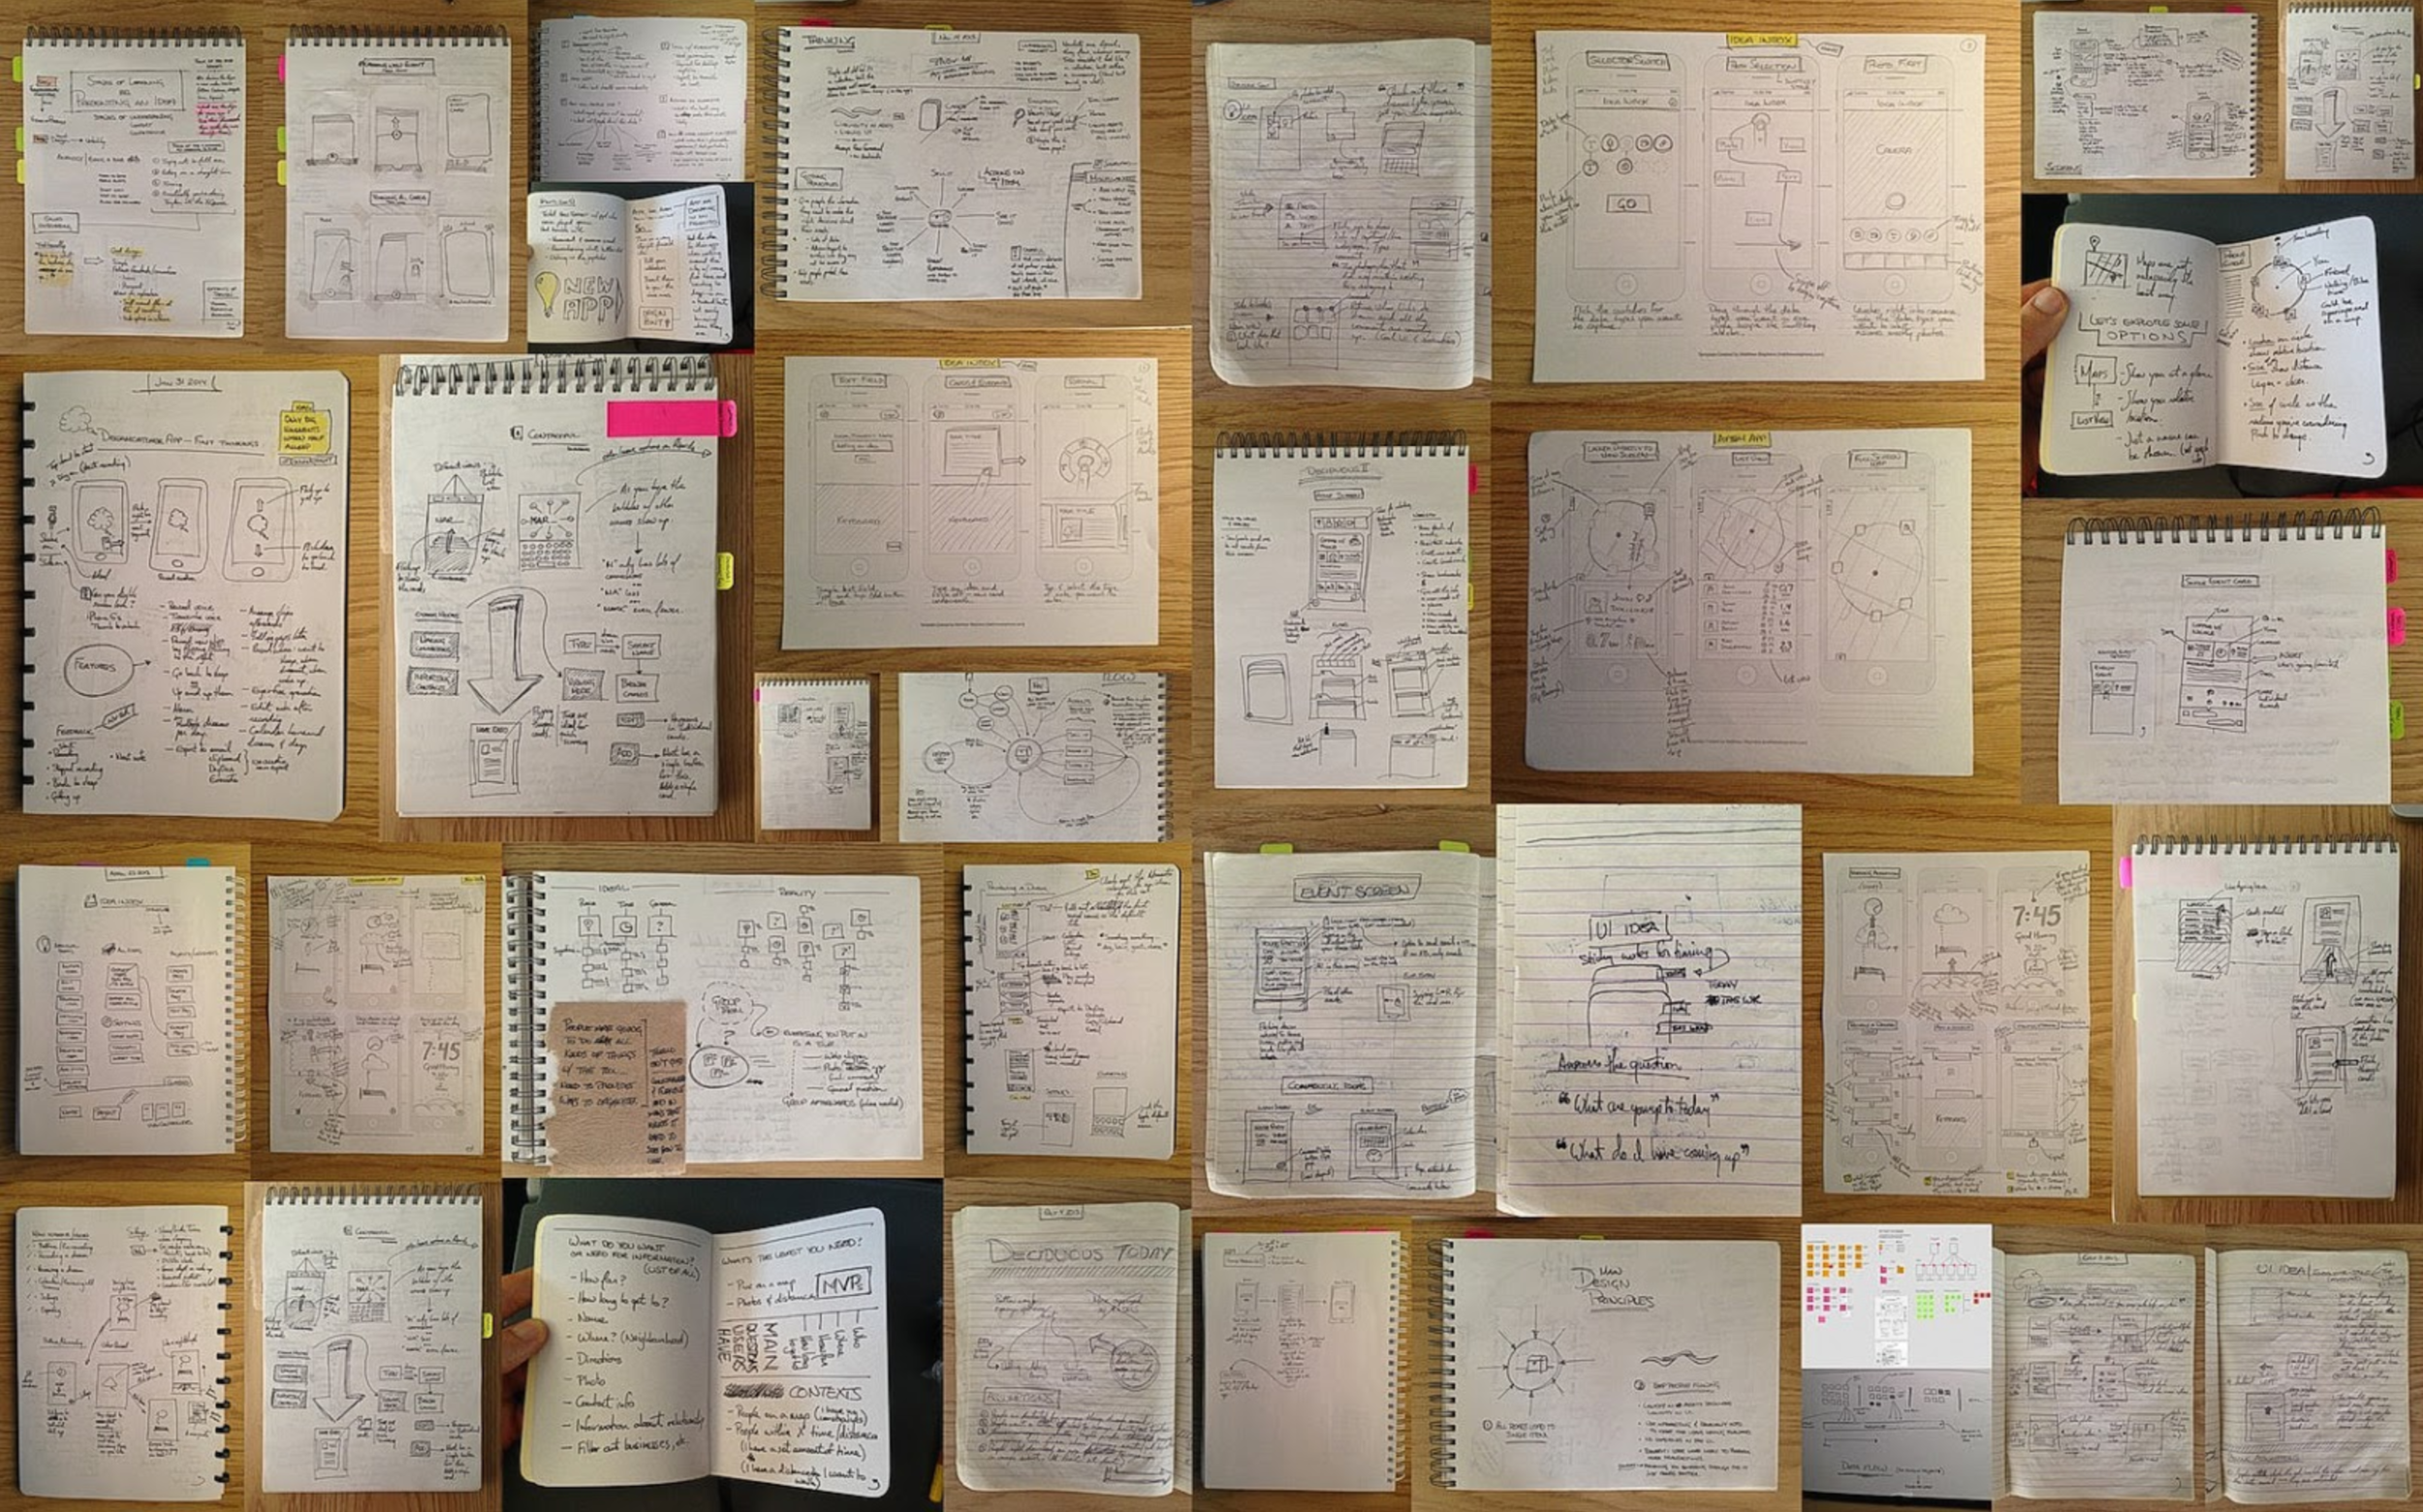 These are the doodles and sketches I turned into a portfolio when I was searching for my first PM job.